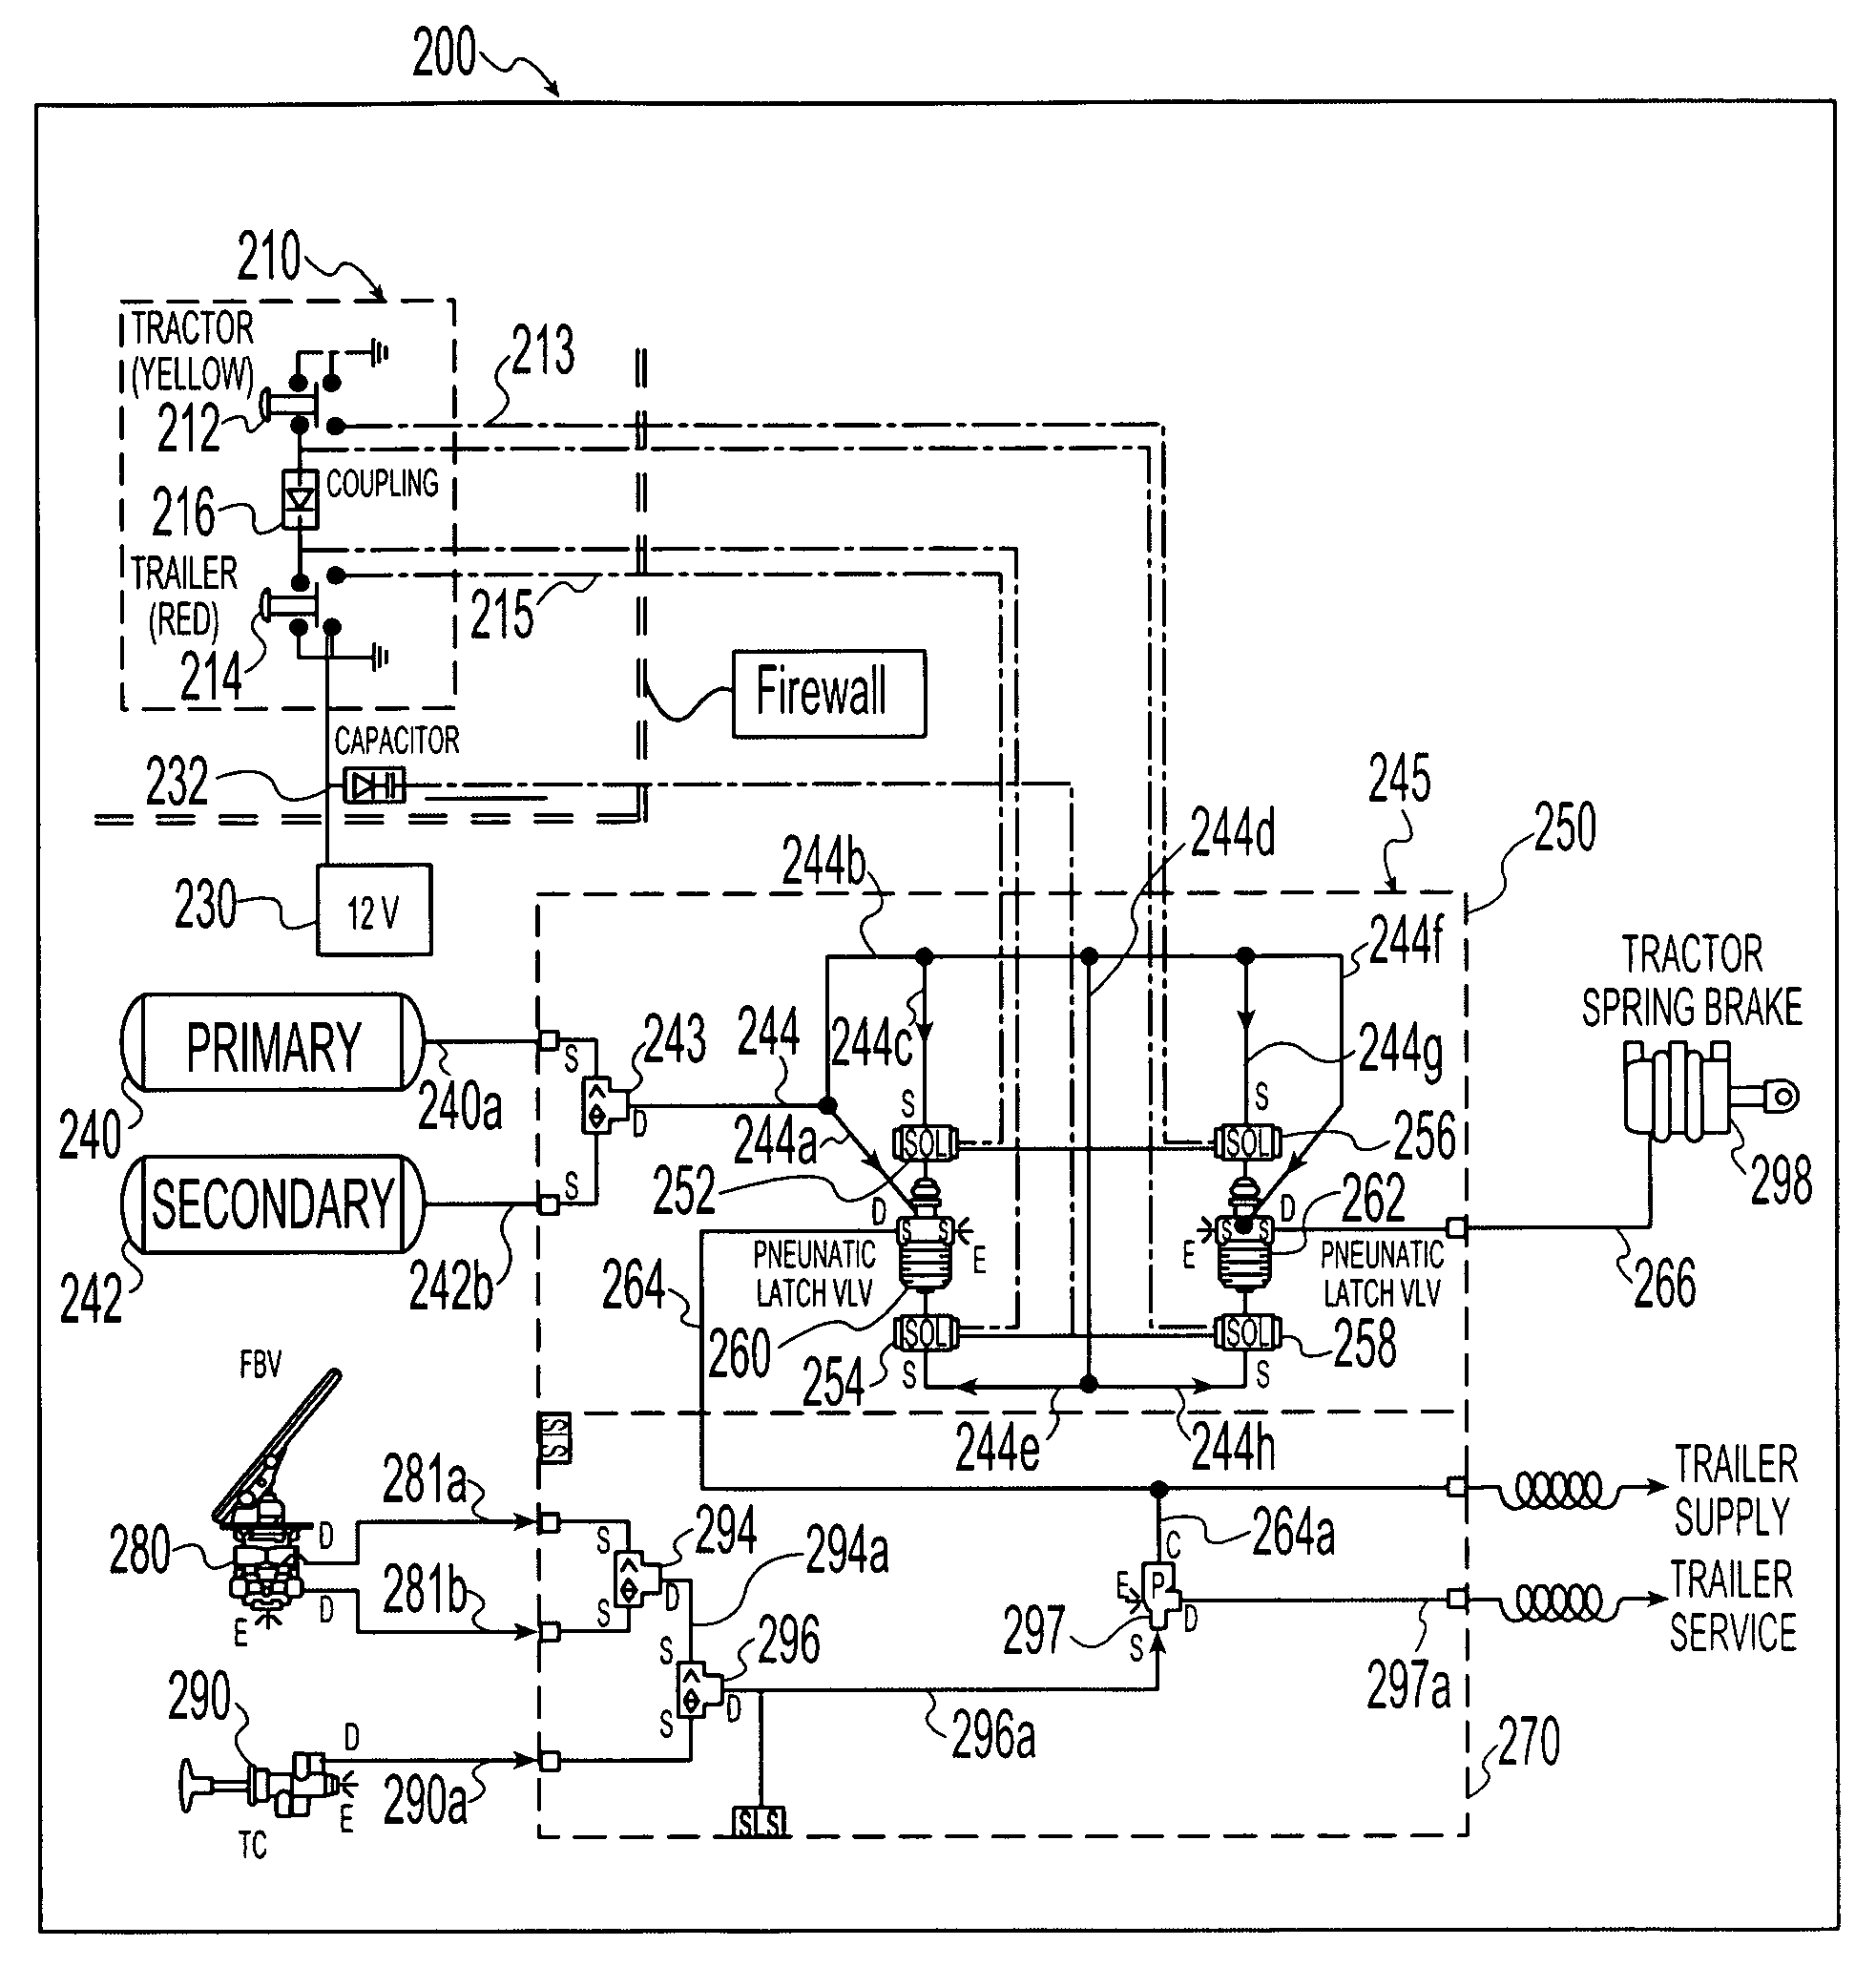 wabco abs wiring diagram trailer arbortech us rh arbortech us Bendix Wiring Diagrams Ford E-250 ABS Brake Module Wiring Diagram